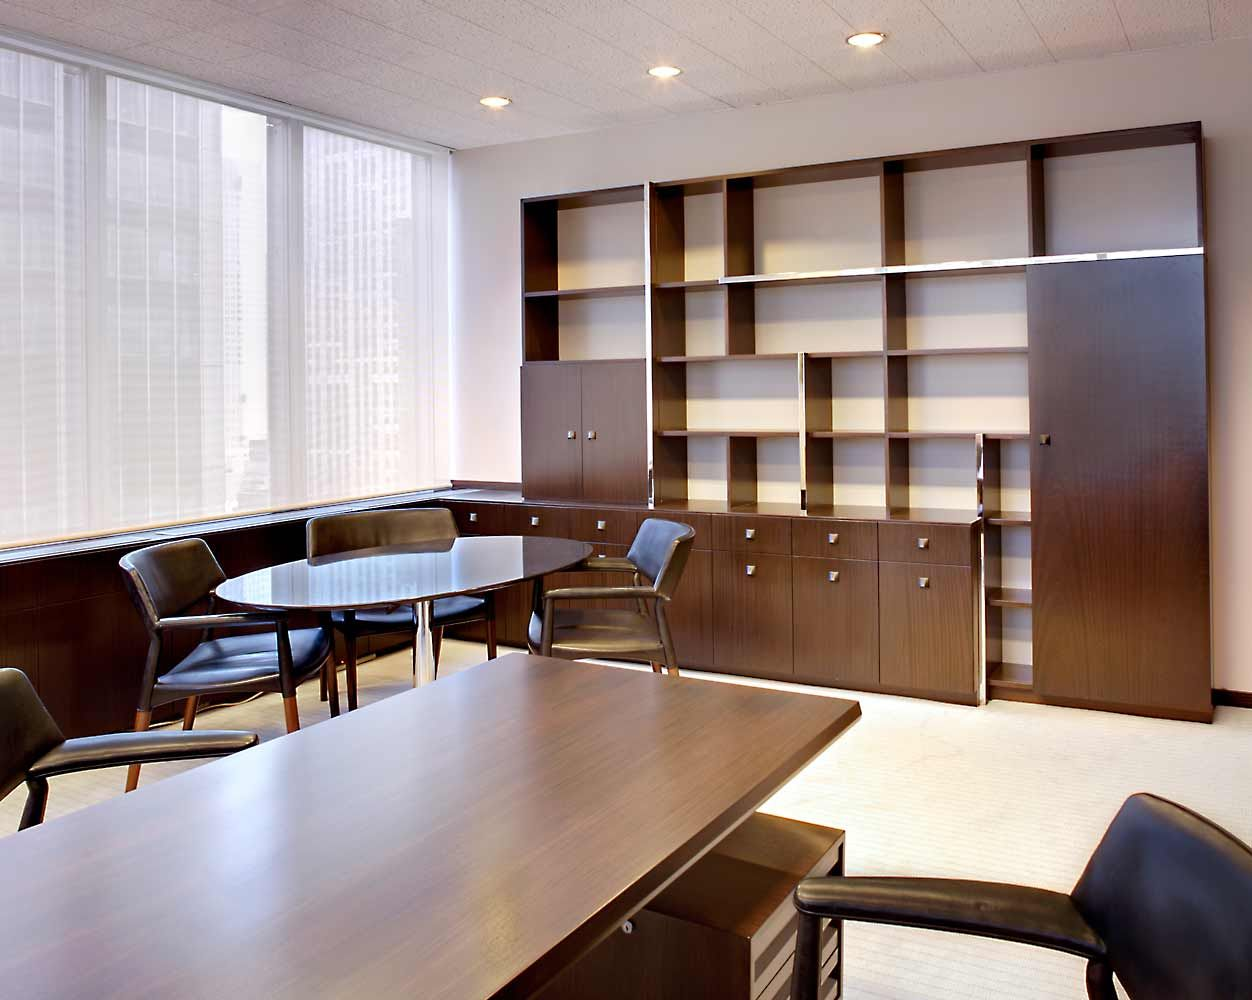 Law Office Design Ideas law firm office design trends Find This Pin And More On Law Office